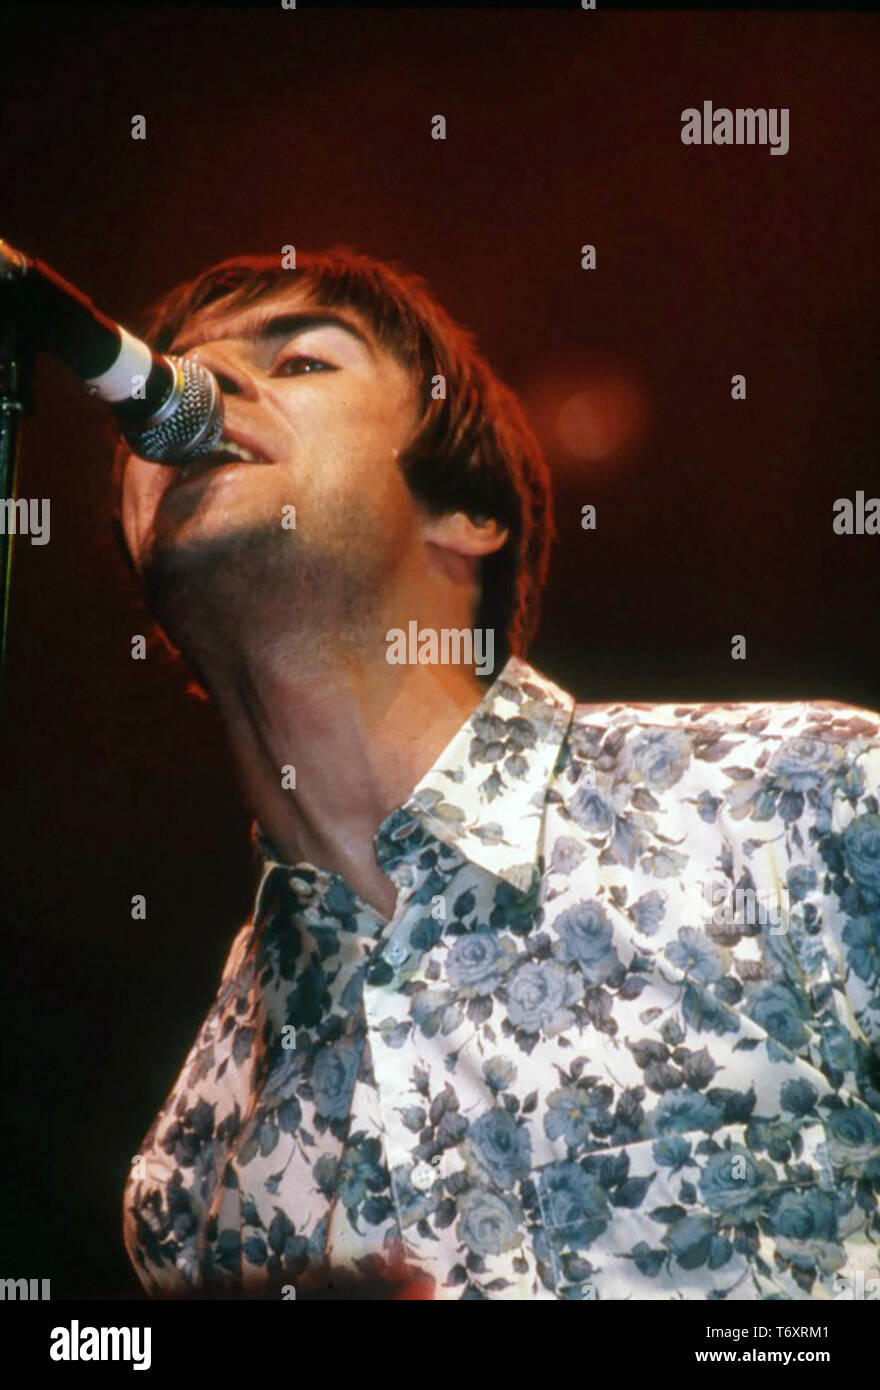 OASIS English rock group with Liam Gallagher in 1995 - Stock Image